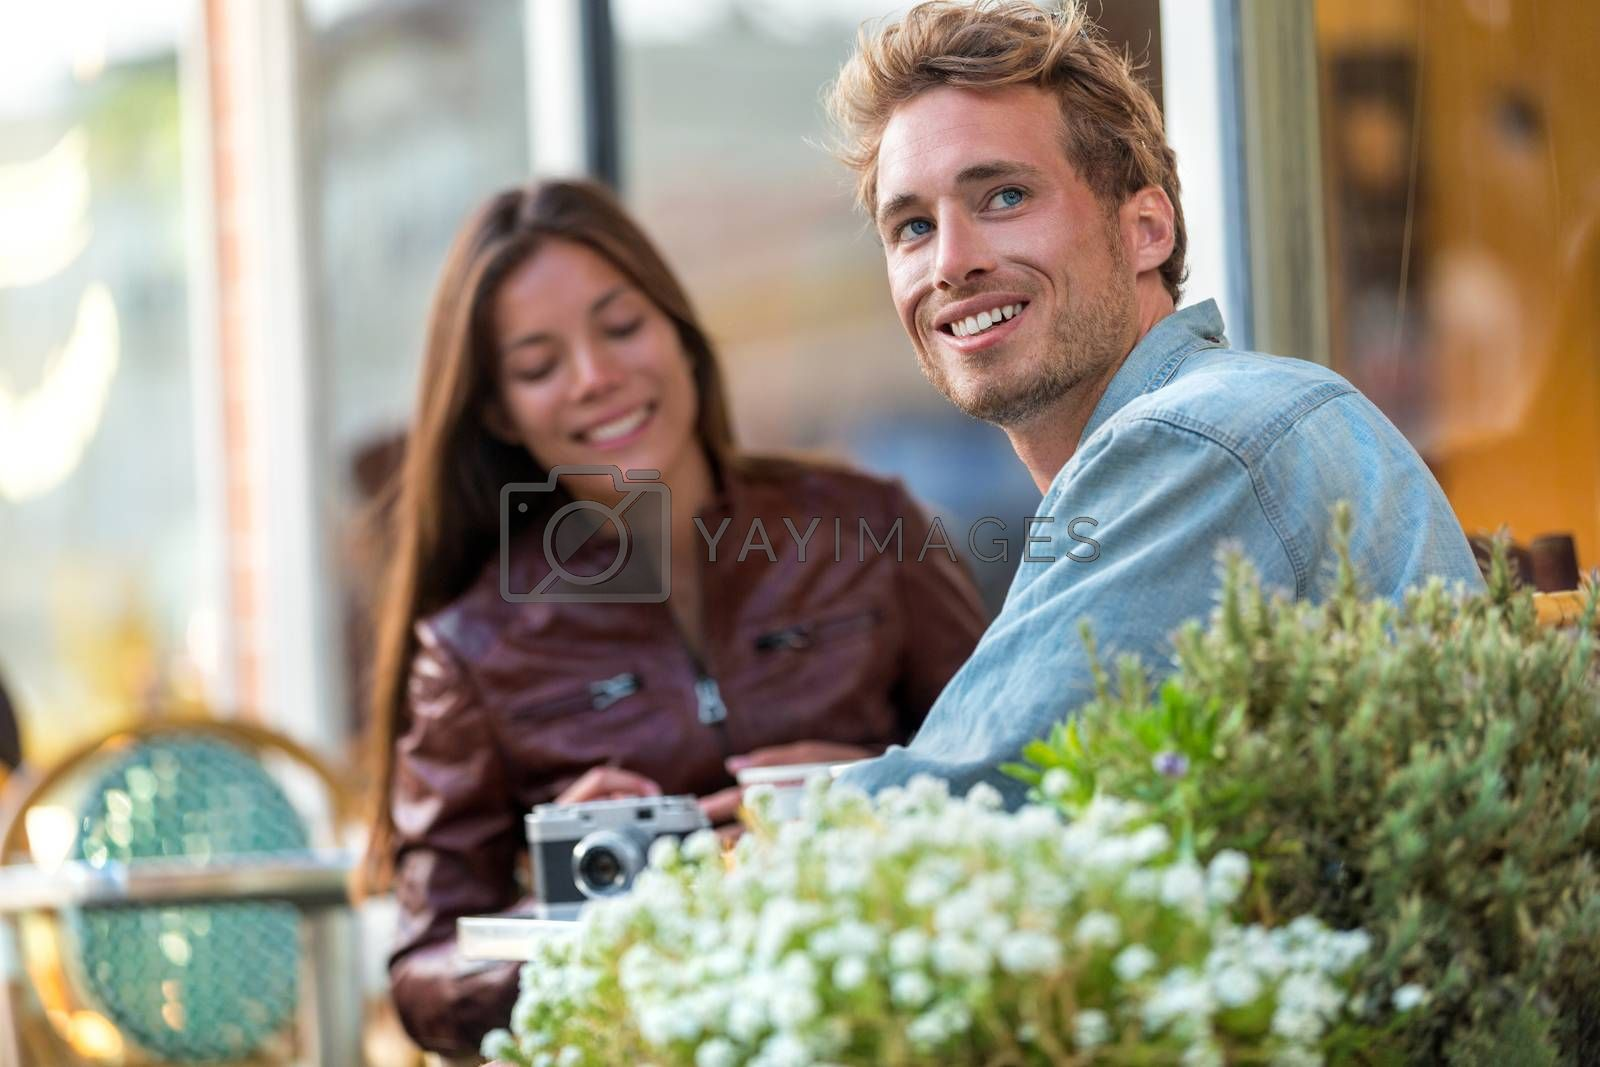 Young urban man enjoying sitting at restaurant table with friend in city. European travel couple vacation. Casual people lifestyle.